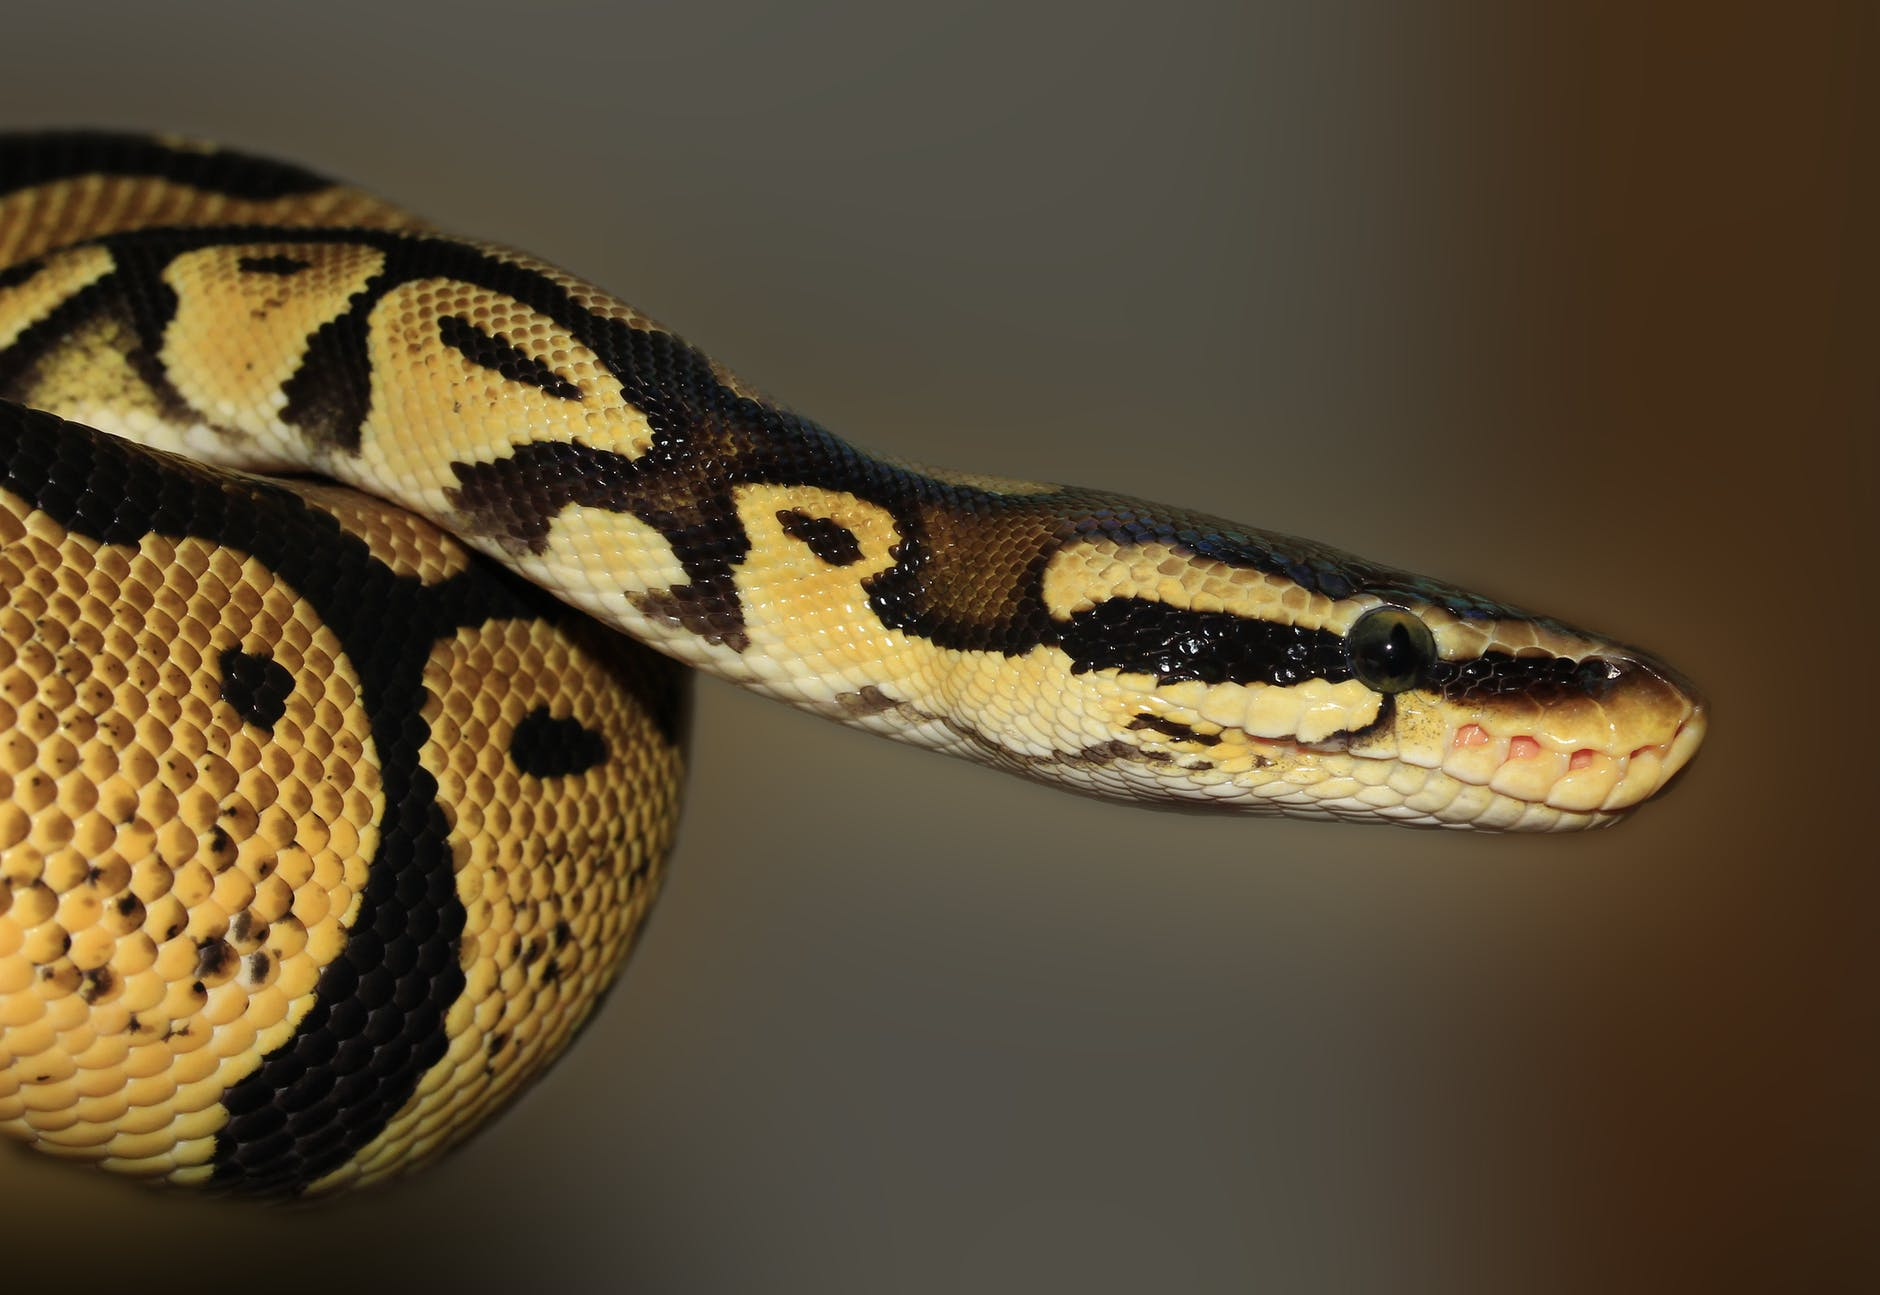 A brown python. Pythons typically develop hind limb buds, even though they have no limbs.